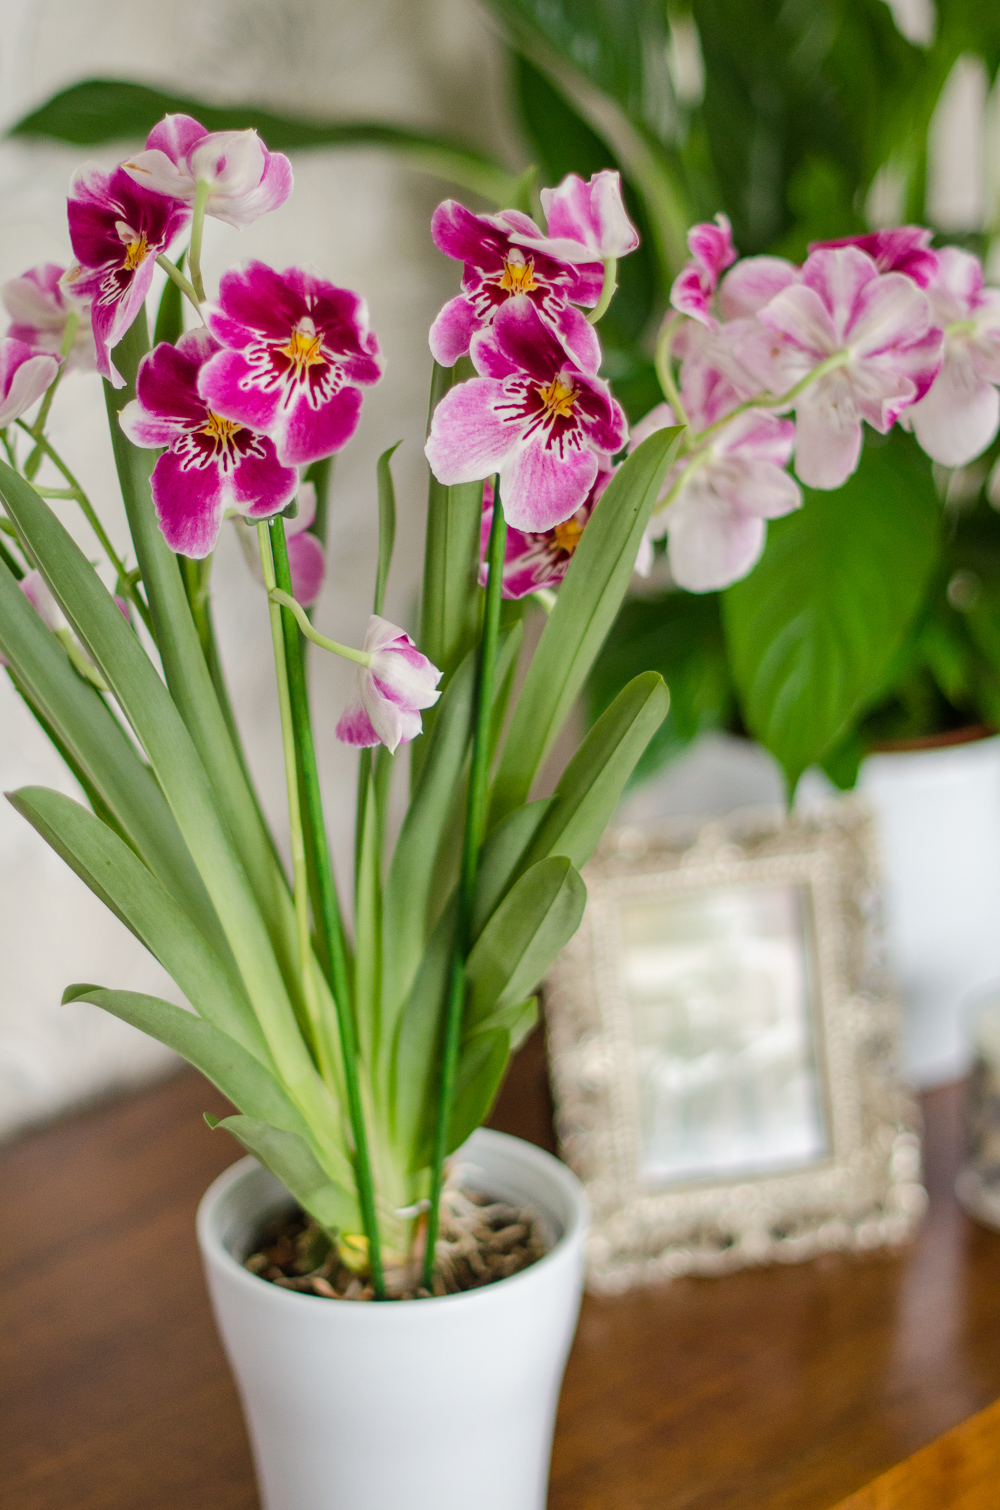 Orchid care tips with baby bio growing family How do you care for orchids after they bloom